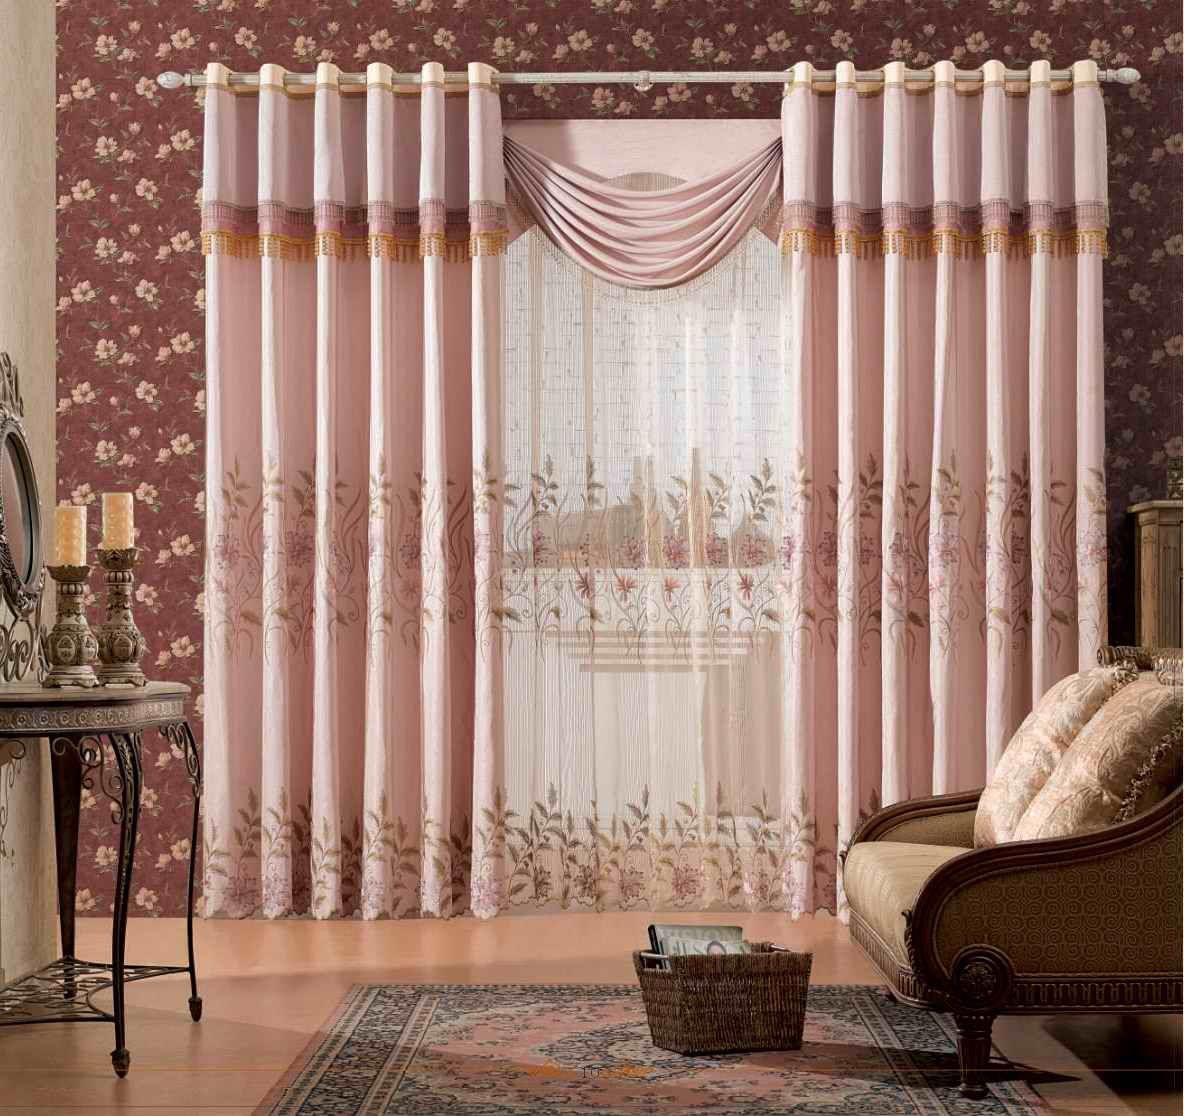 Living Room Curtains Designs Best Top 22 Curtain Designs For Living Room  European Style Beautiful Inspiration Design